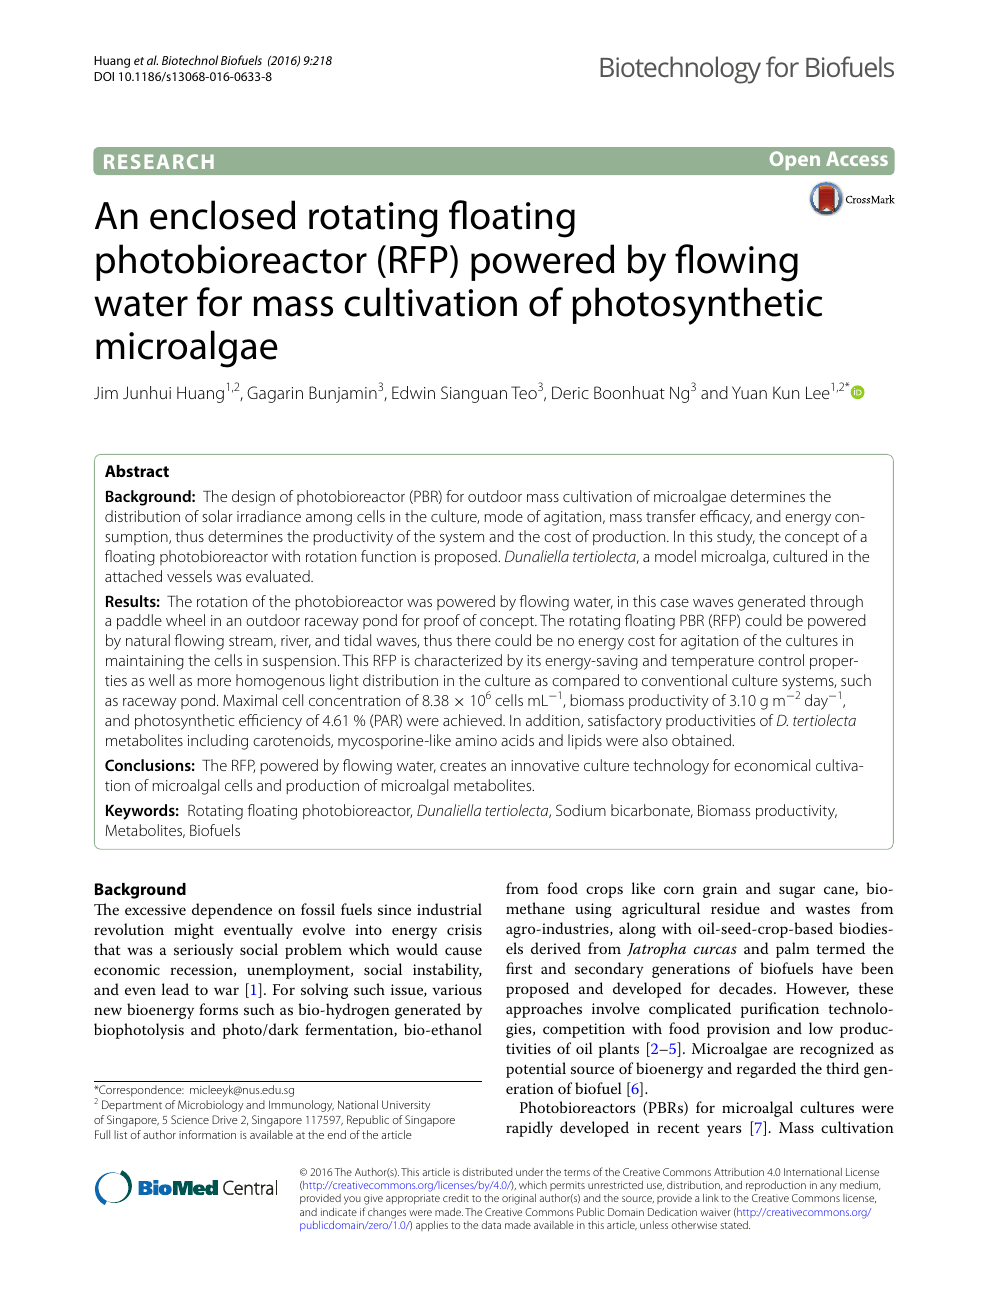 An Enclosed Rotating Floating Photobioreactor Rfp Powered By Flowing Water For Mass Cultivation Of Photosynthetic Microalgae Topic Of Research Paper In Biological Sciences Download Scholarly Article Pdf And Read For Free